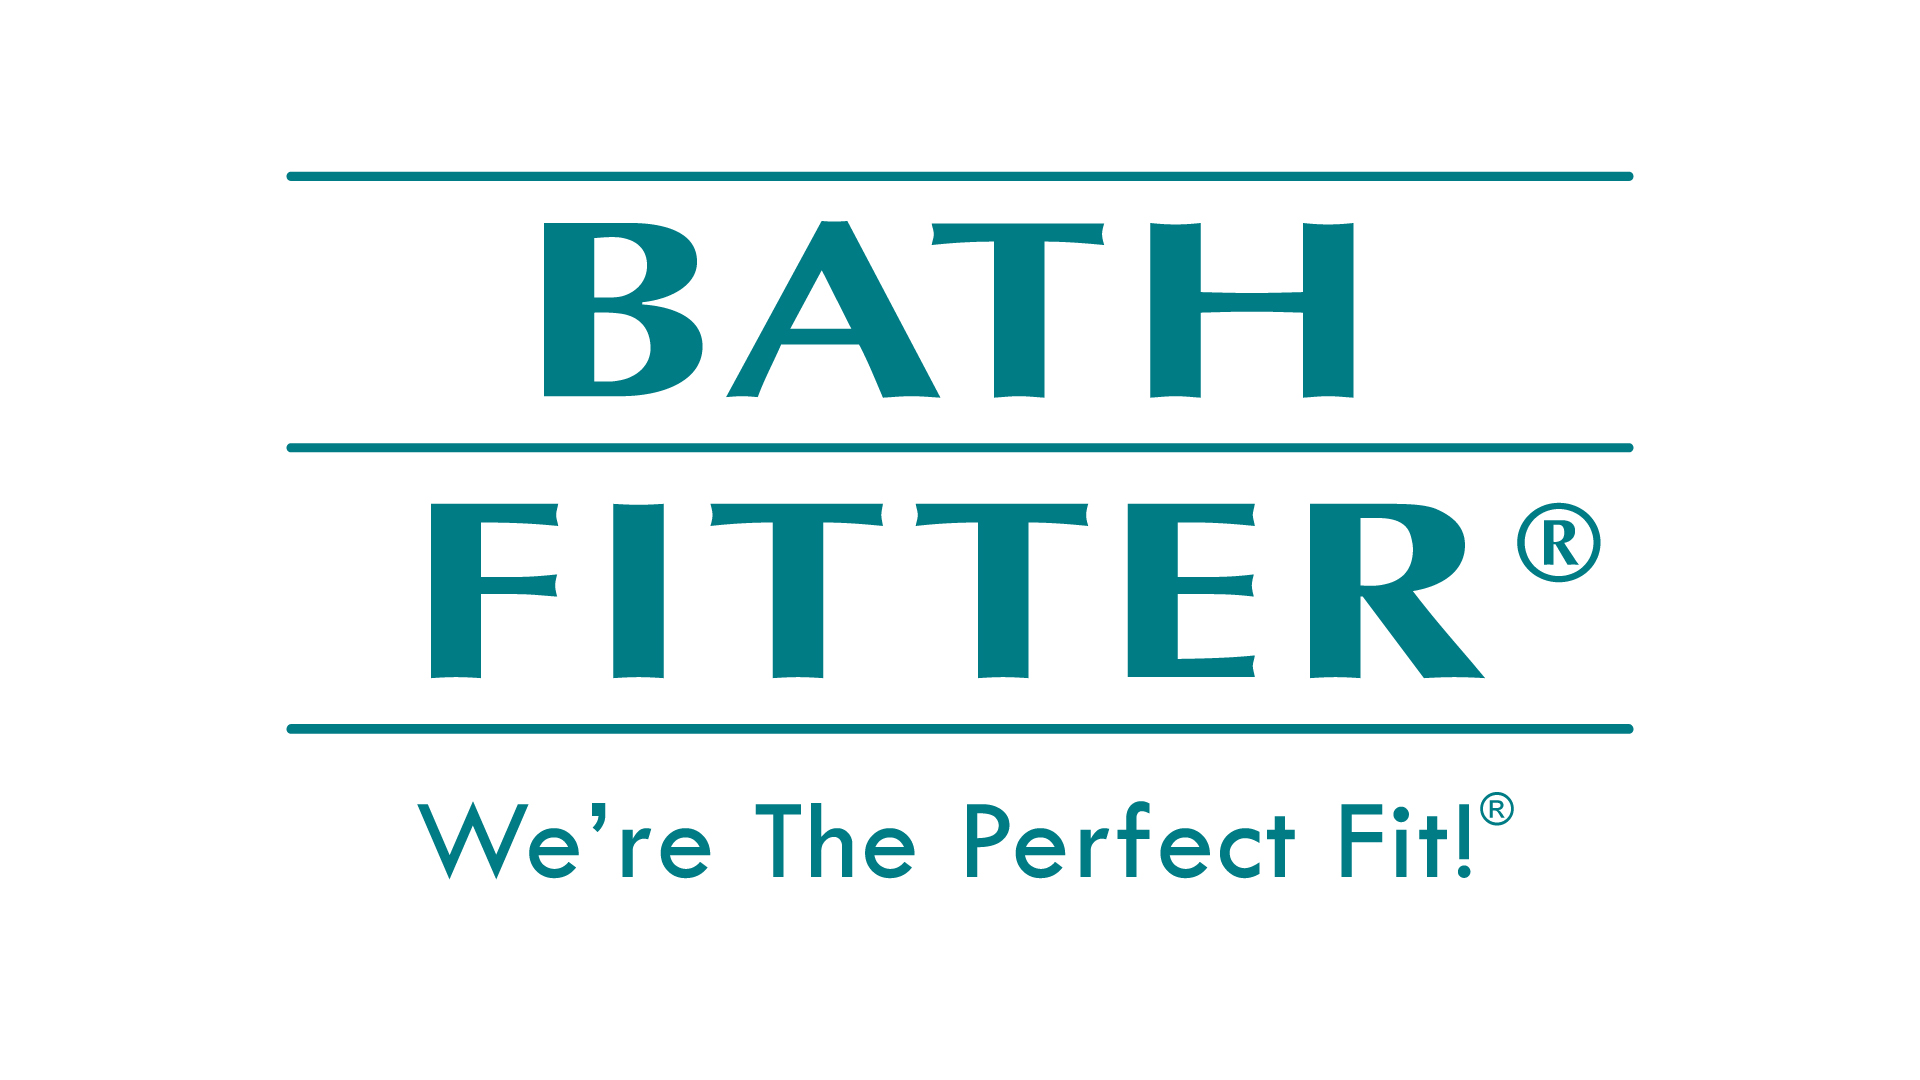 Bath Fitter logo color